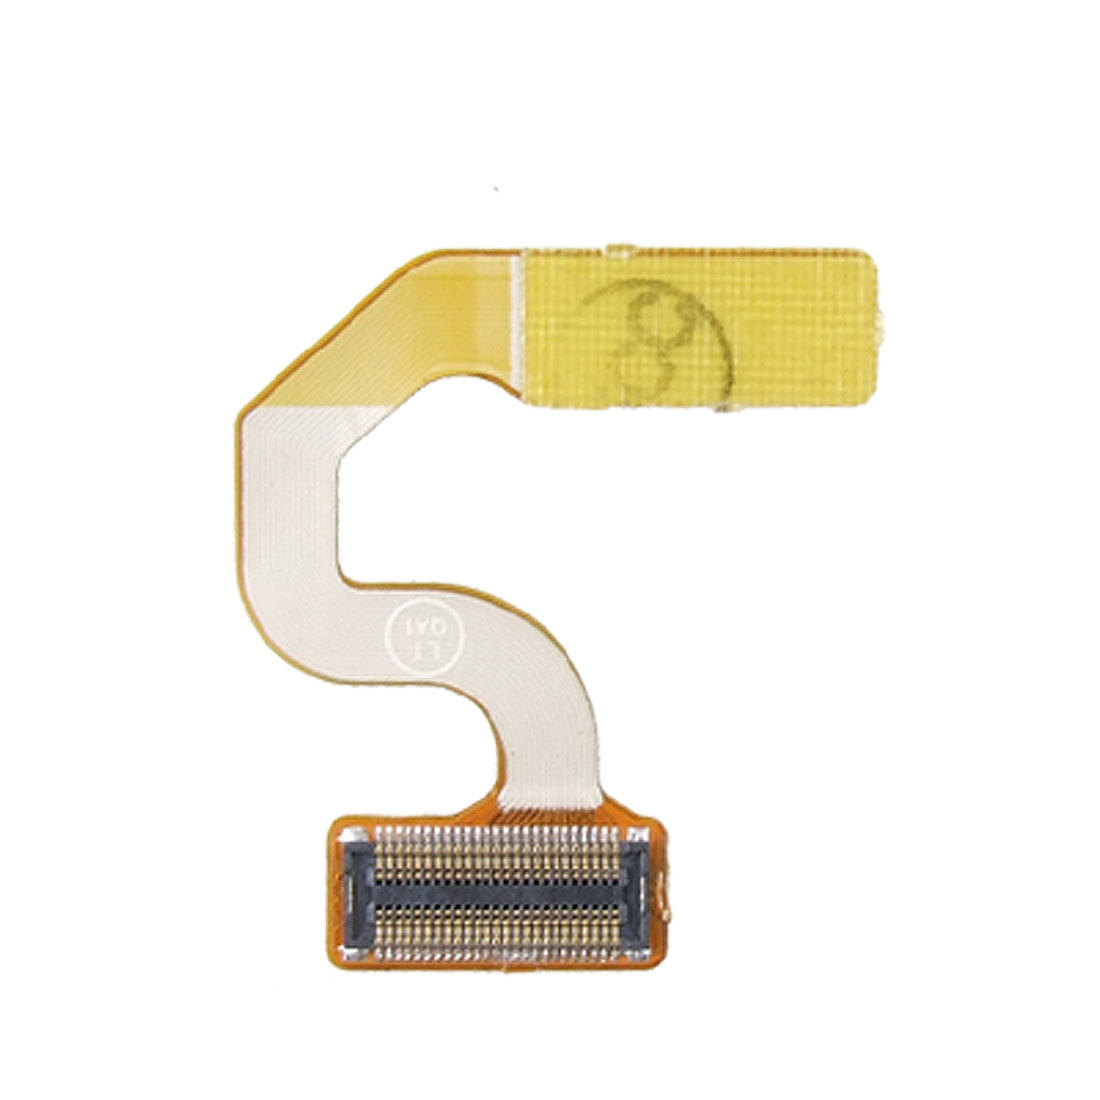 Hinge Repair Part Flat Flex Cable for Motorola EM28 EM330